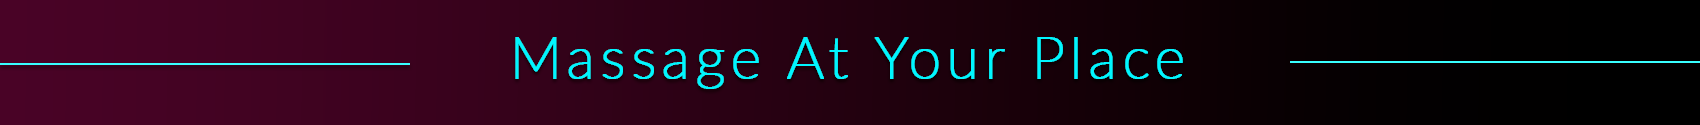 Website Headings - Massage At Your Place.png